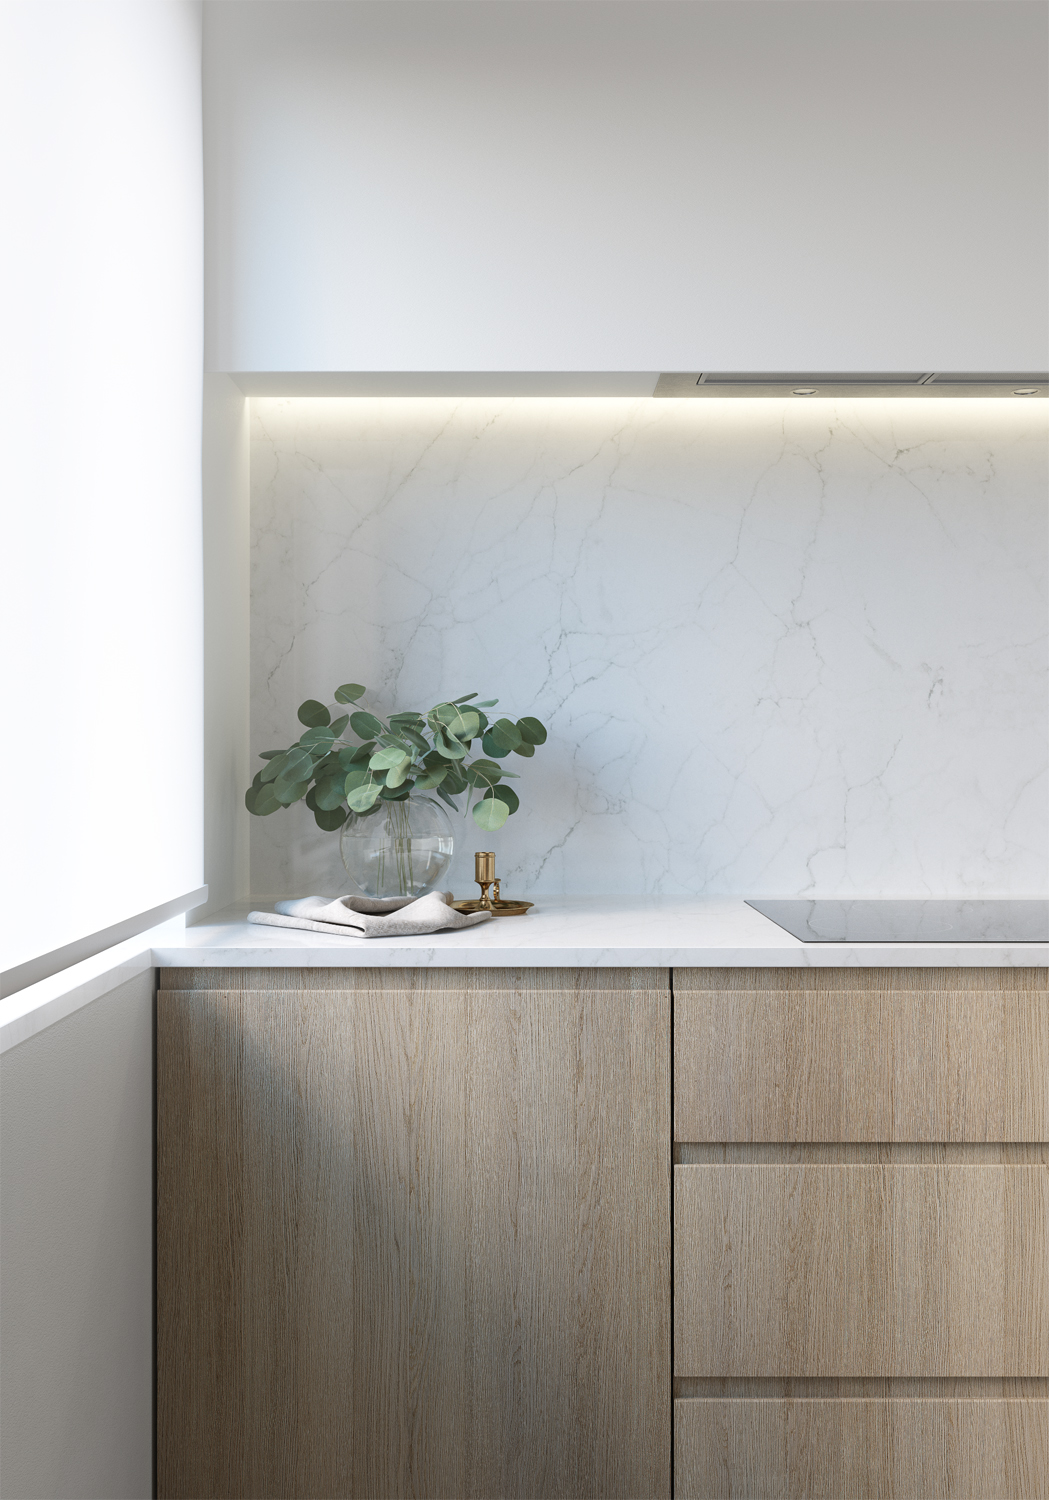 E design kitchen and dining area, 3d kitchen visualisation, e-design process, small space interior design, timber veneer cabinetry, marble slab backsplash, marble slab countertop, white roller shades